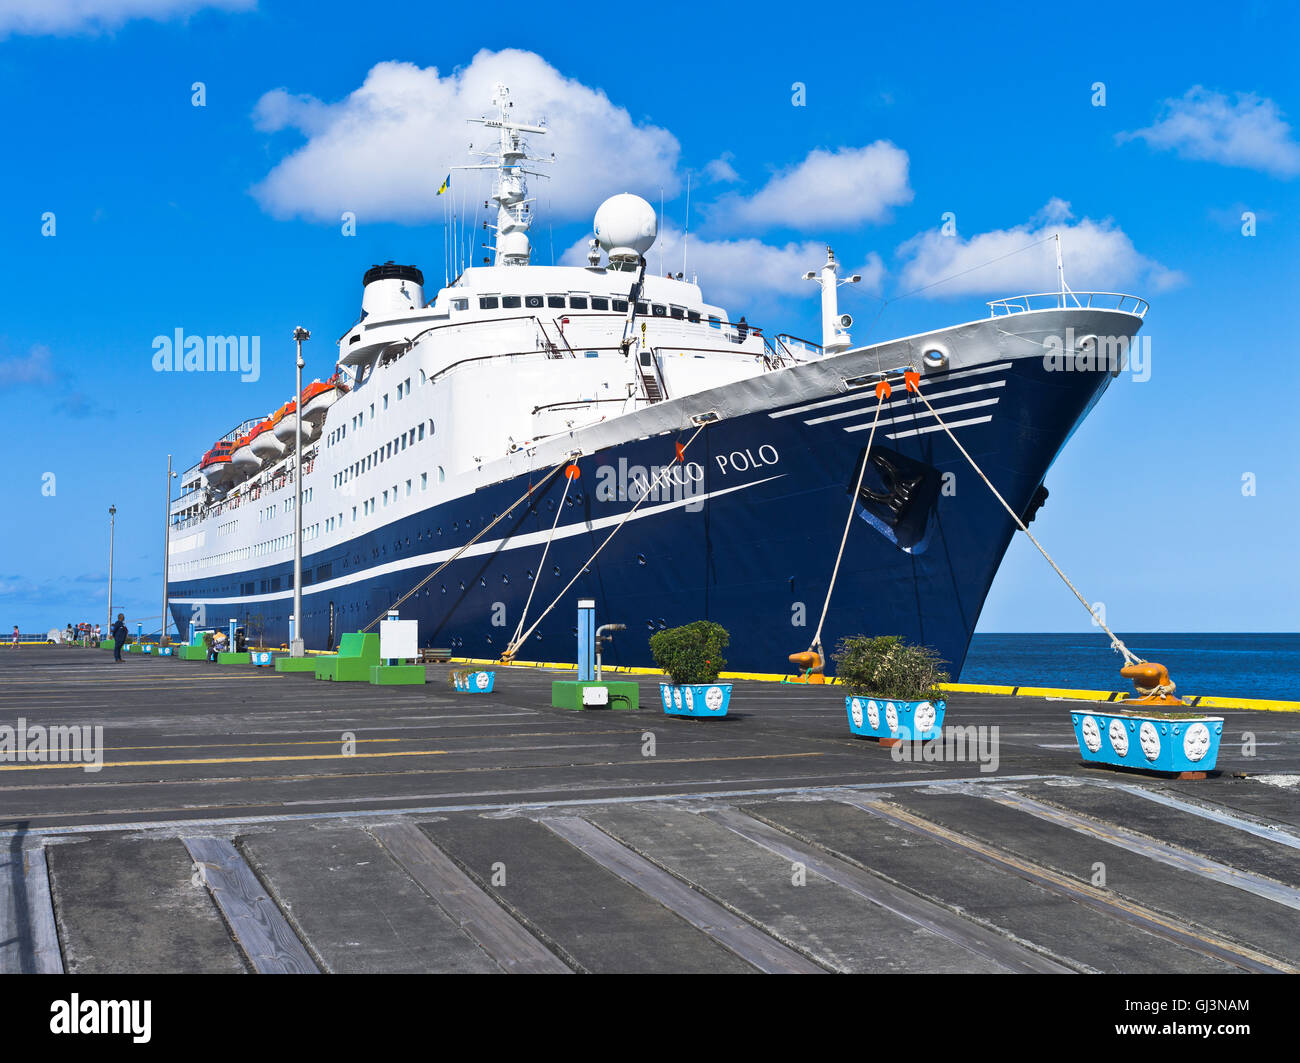 dh Marco Polo CRUISE SHIP CARIBBEAN cmv cruise liner berthed kingstown st vincent wharf pier in port - Stock Image